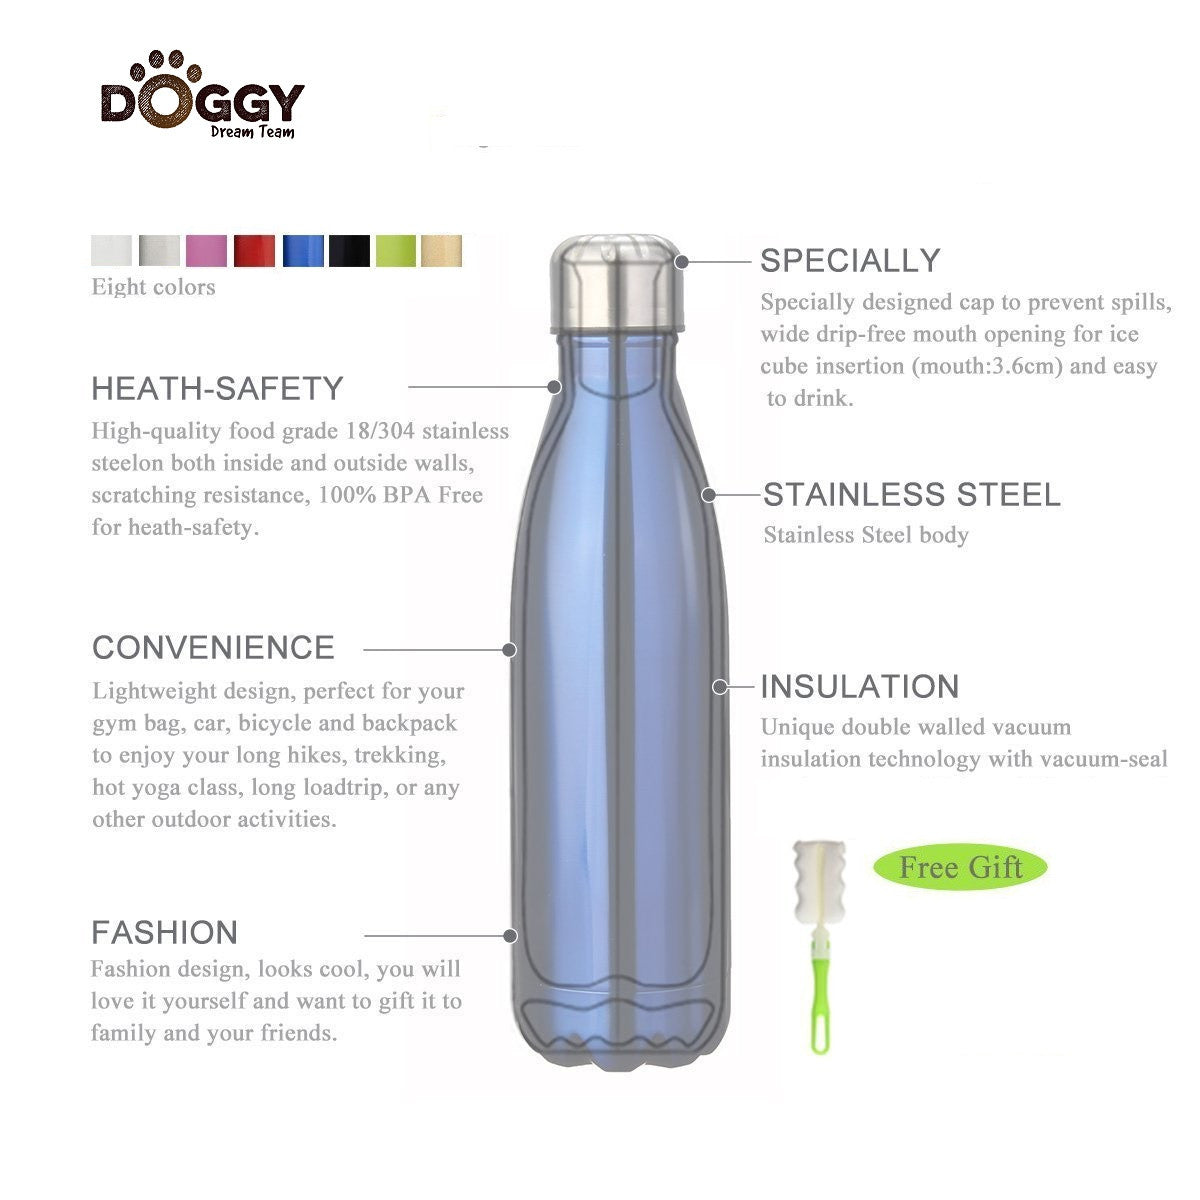 b4f0adf277 Insulated Stainless Steel Water Bottle (500ml) ~ The Doggy Dream ...